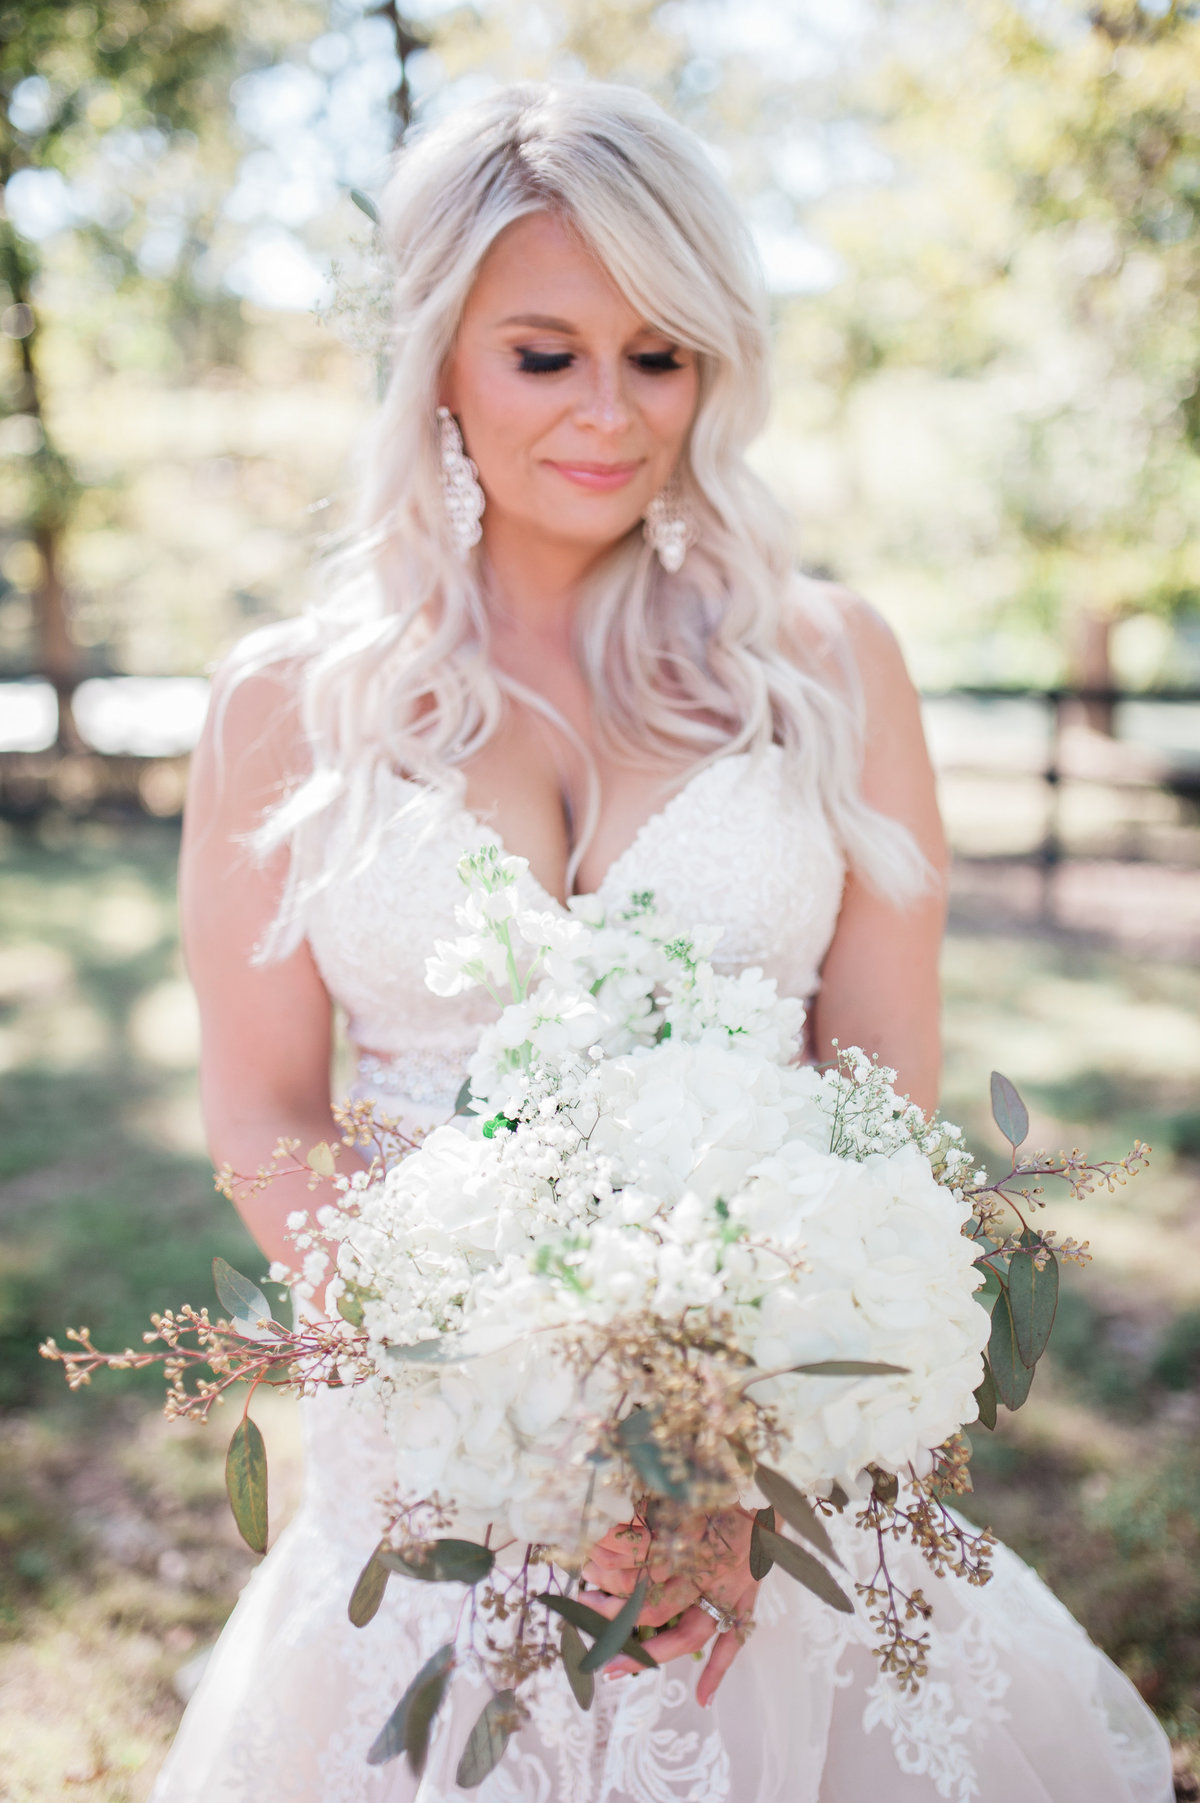 Bentonville Wedding Photographer, Fayetteville Wedding Photography, Northwest Arkansas Wedding Photographer, Arkansas Wedding, northwest Arkansas wedding, NWA Wedding-129